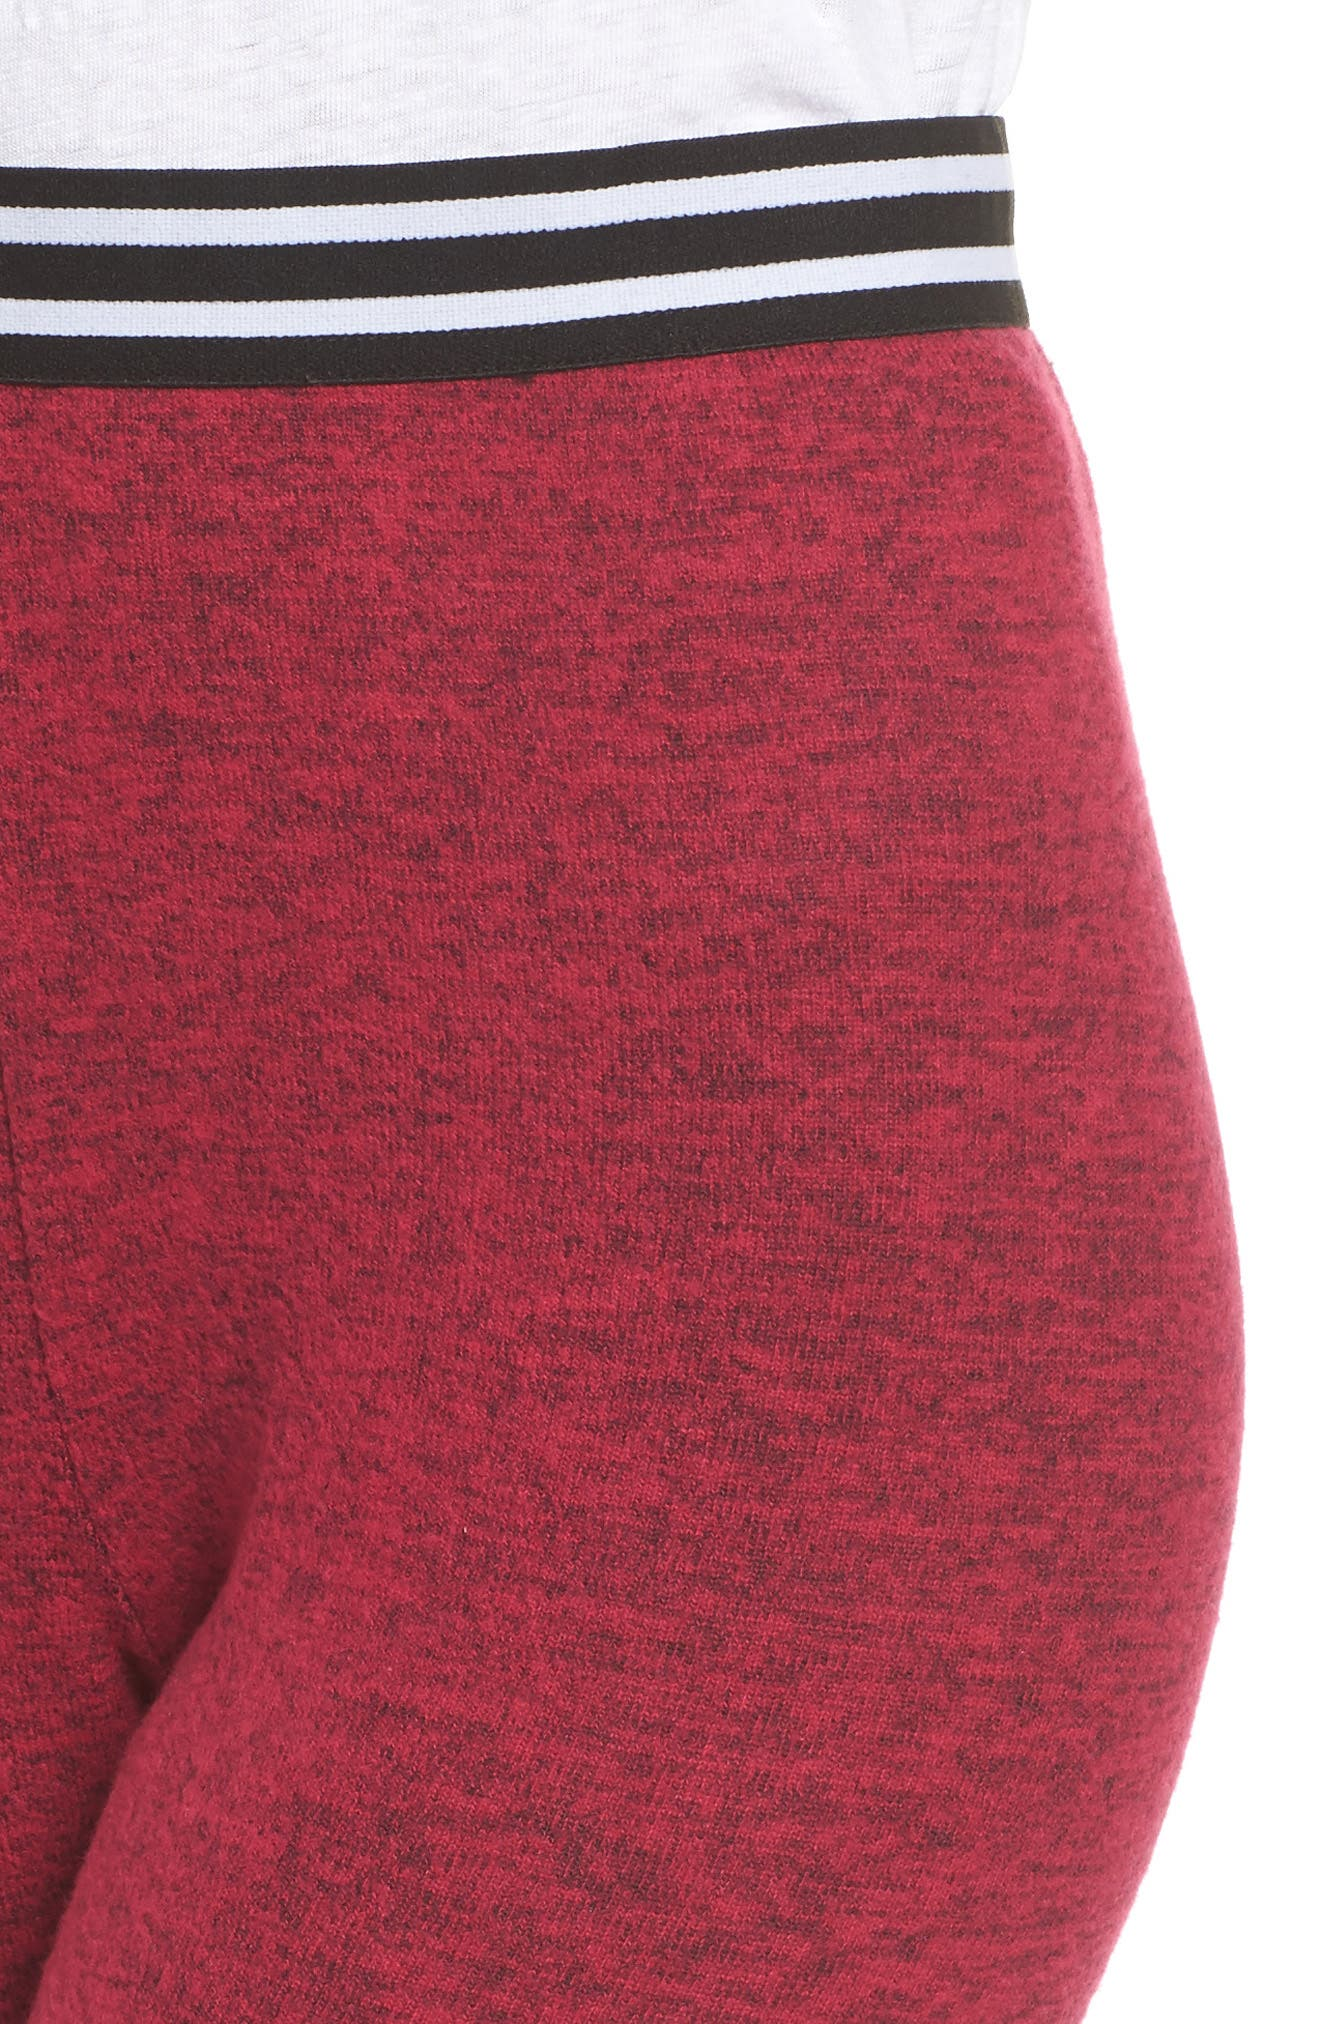 Cuddle Up Lounge Leggings,                             Alternate thumbnail 6, color,                             Pink Vivacious Marl